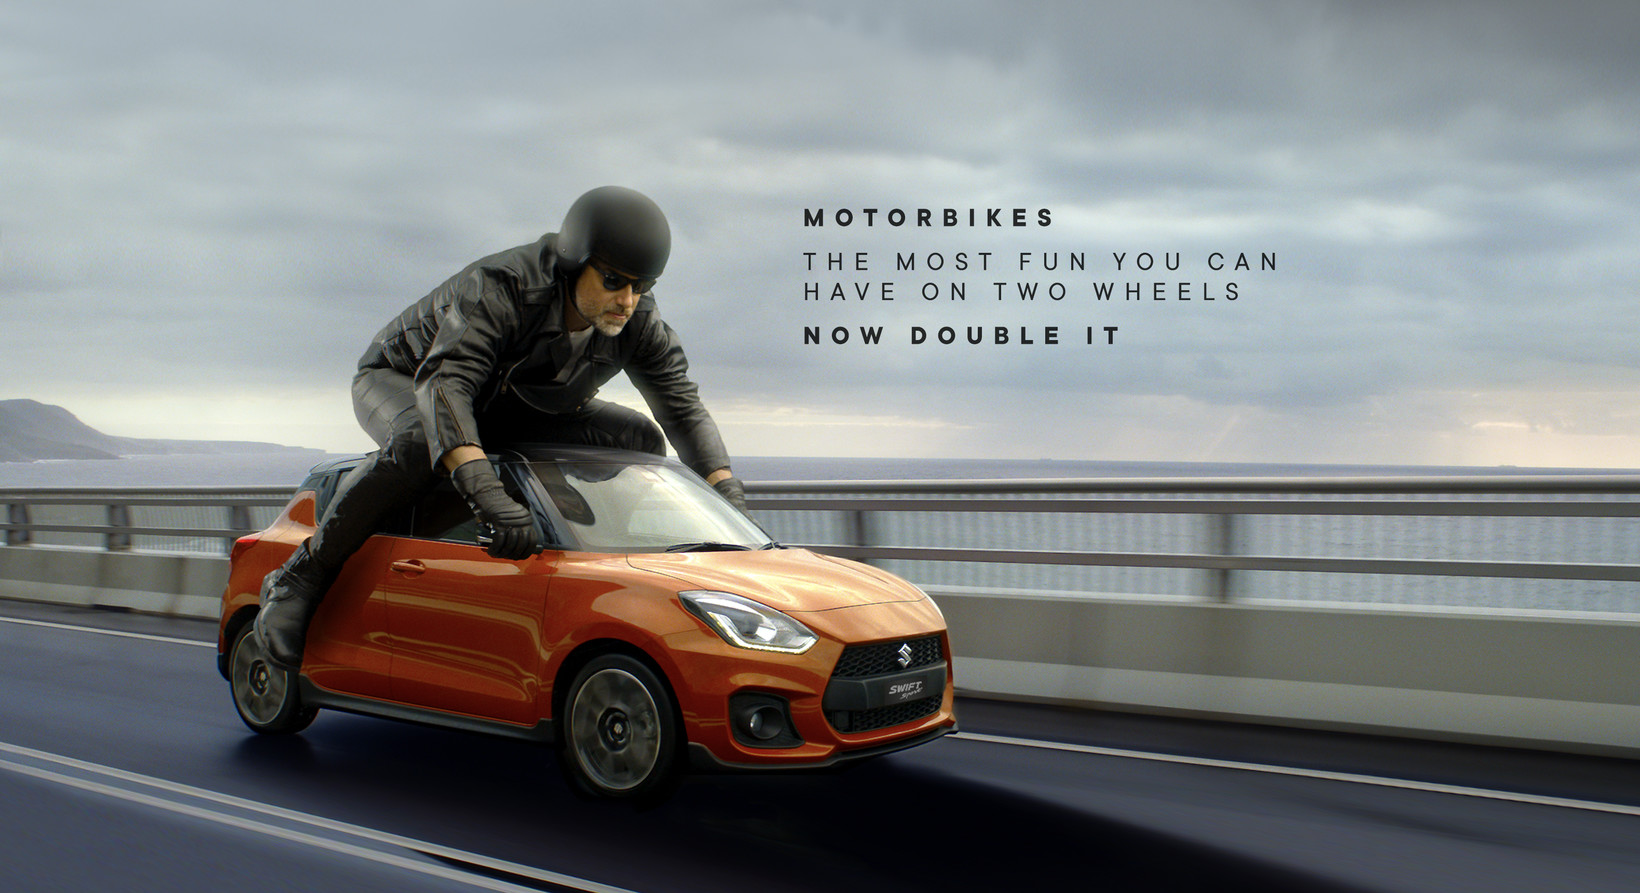 Suzuki - Motorbikes. The most fun you can have on two wheels. Now double it.